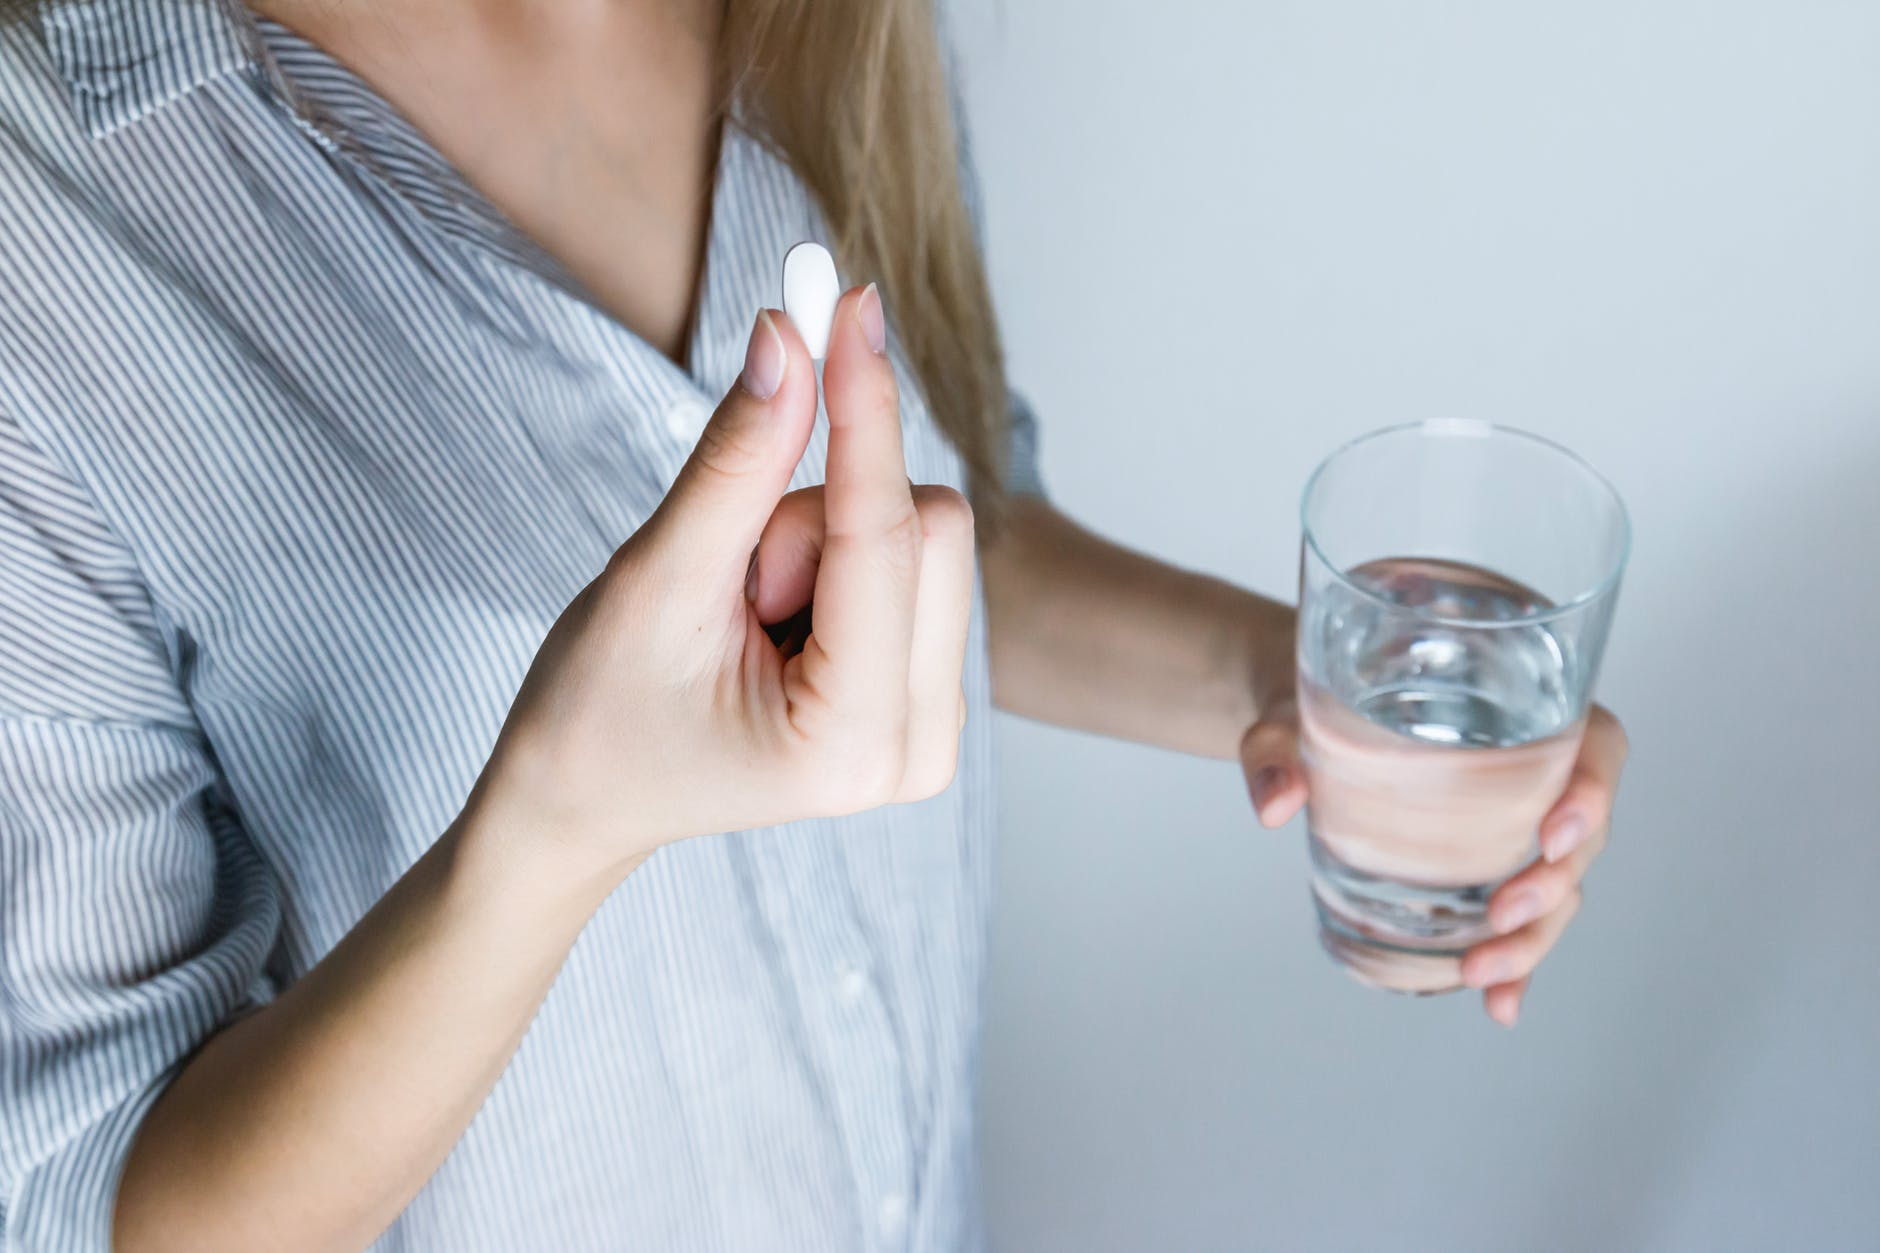 What makes co-codamol the ideal solution for pain relief?